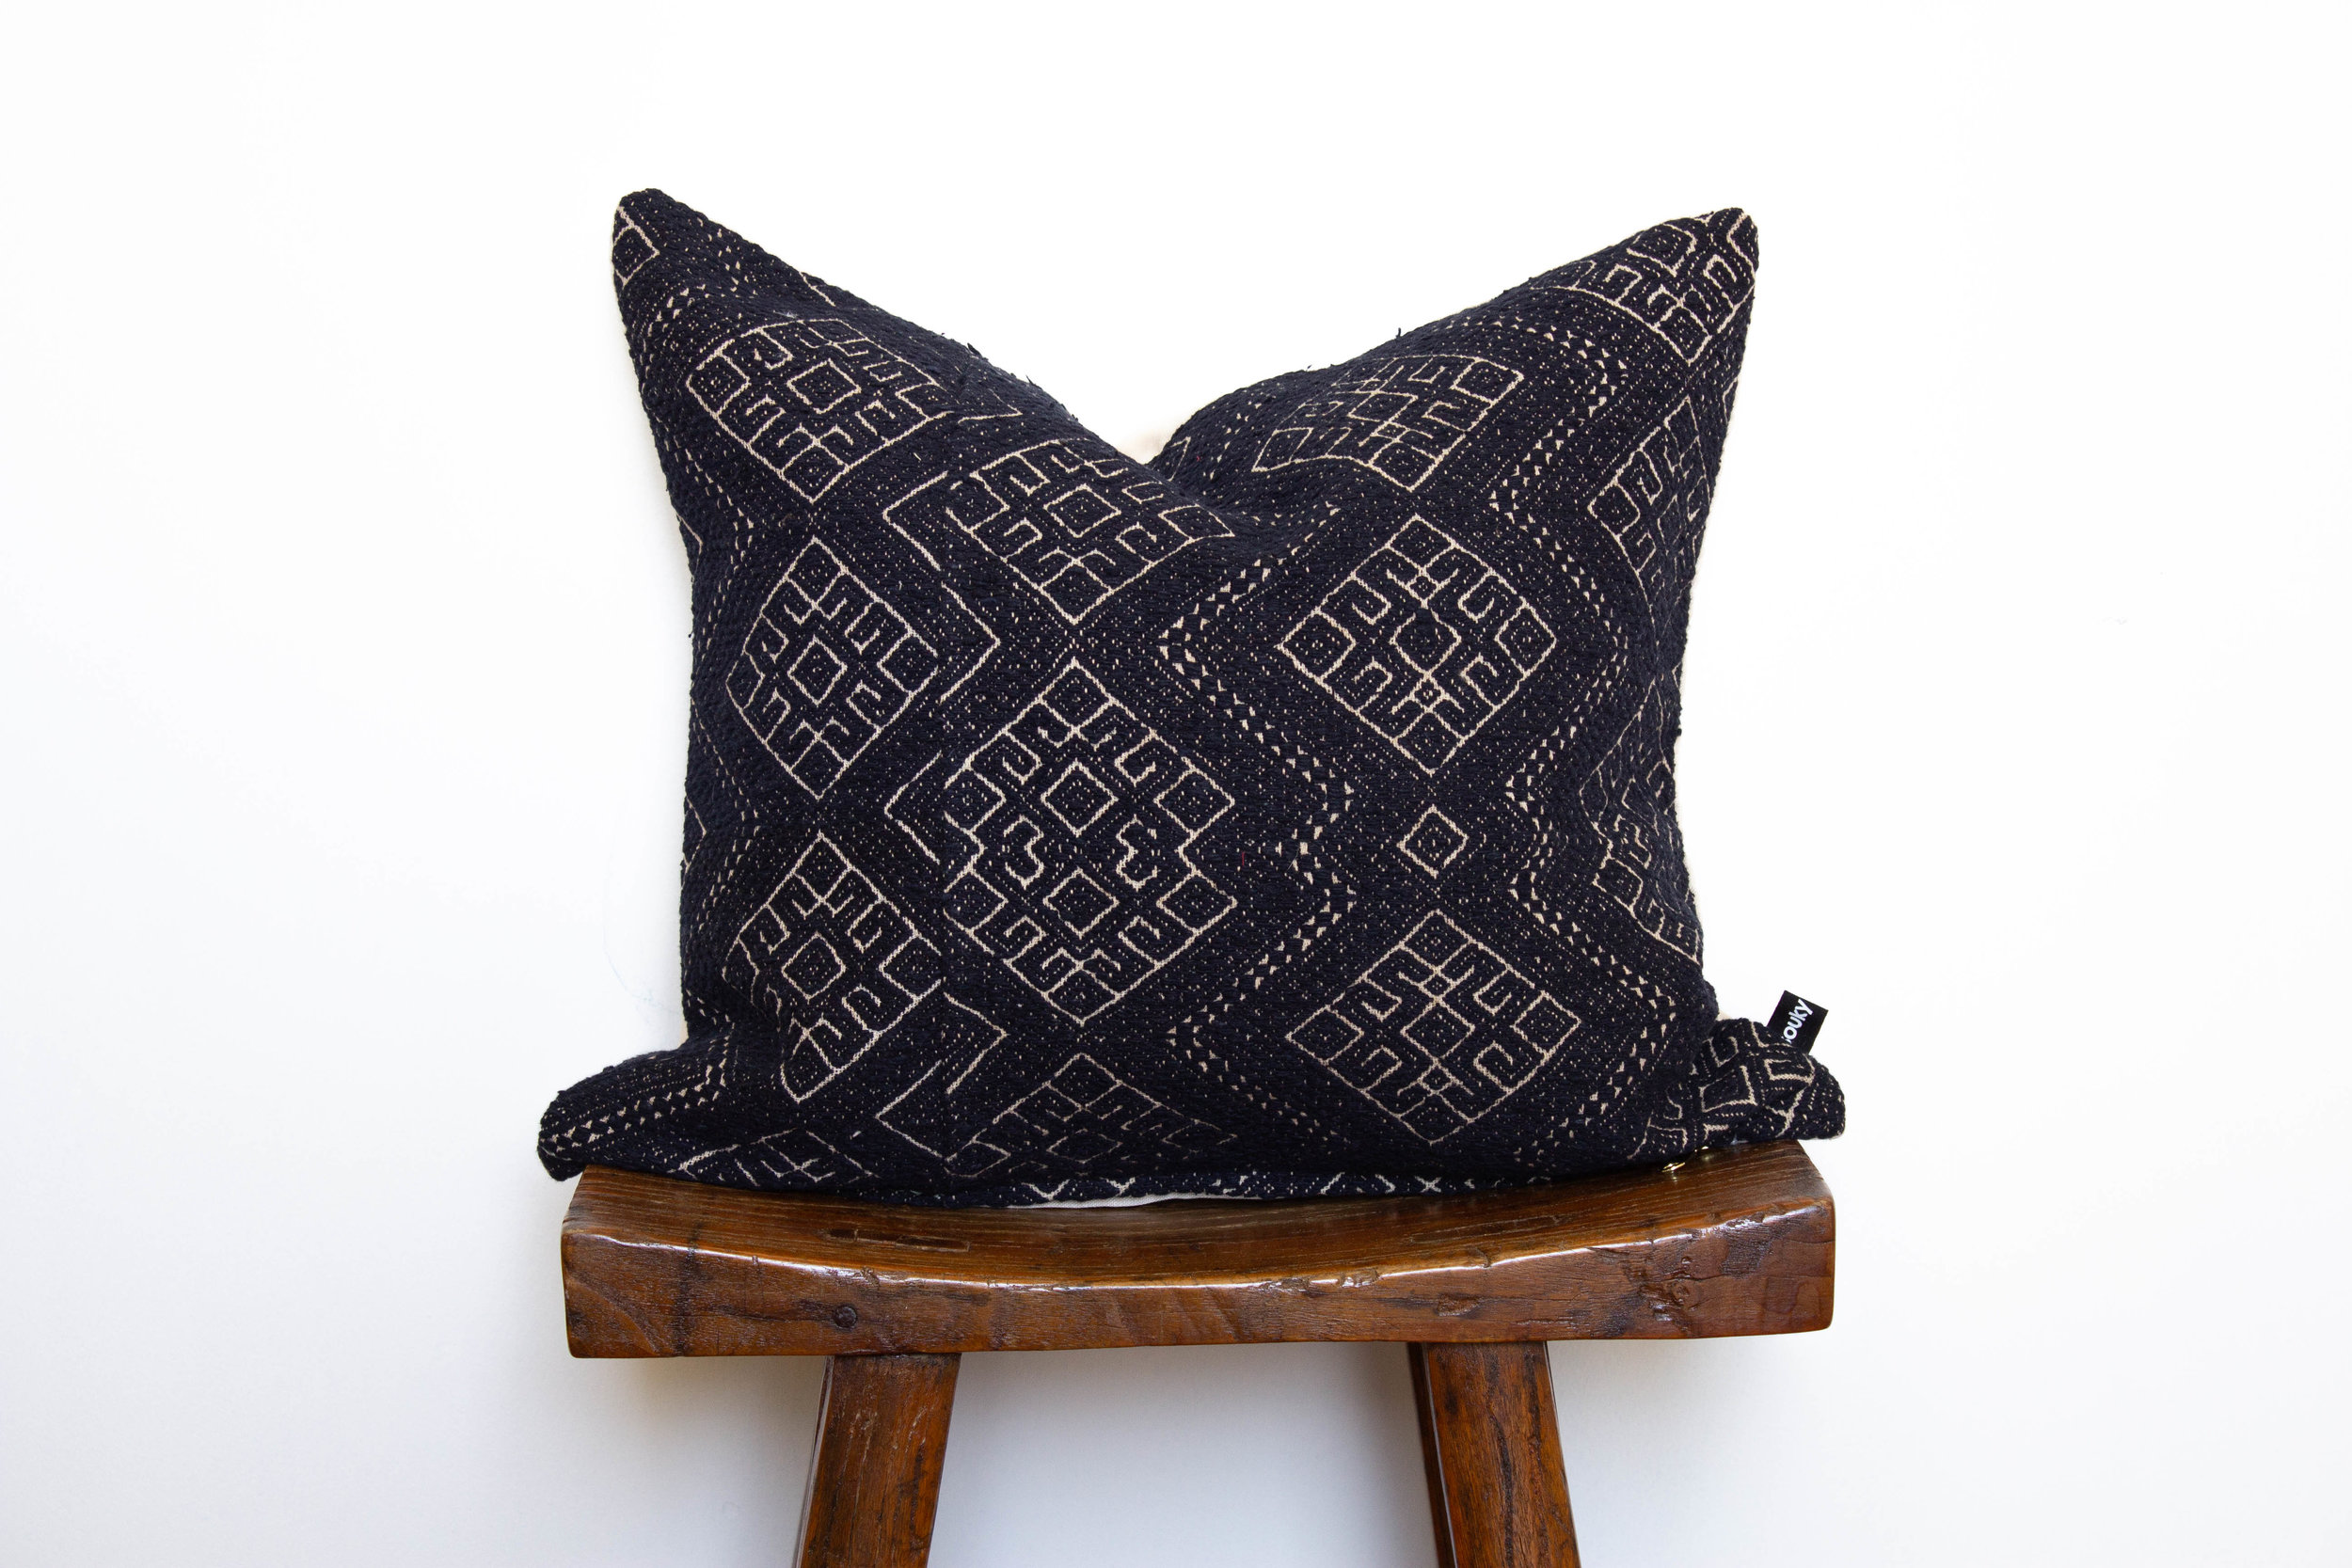 Kelsey- 1 available   450 RMB  Pillow cover is made from vintage, embroidered fabric sourced from southern China  Size: Roughly 46x43 cm  Pillow back is made from a neutral cotton/linen blend  Zipper on bottom of pillow  Down insert included  Hand wash or spot clean recommended